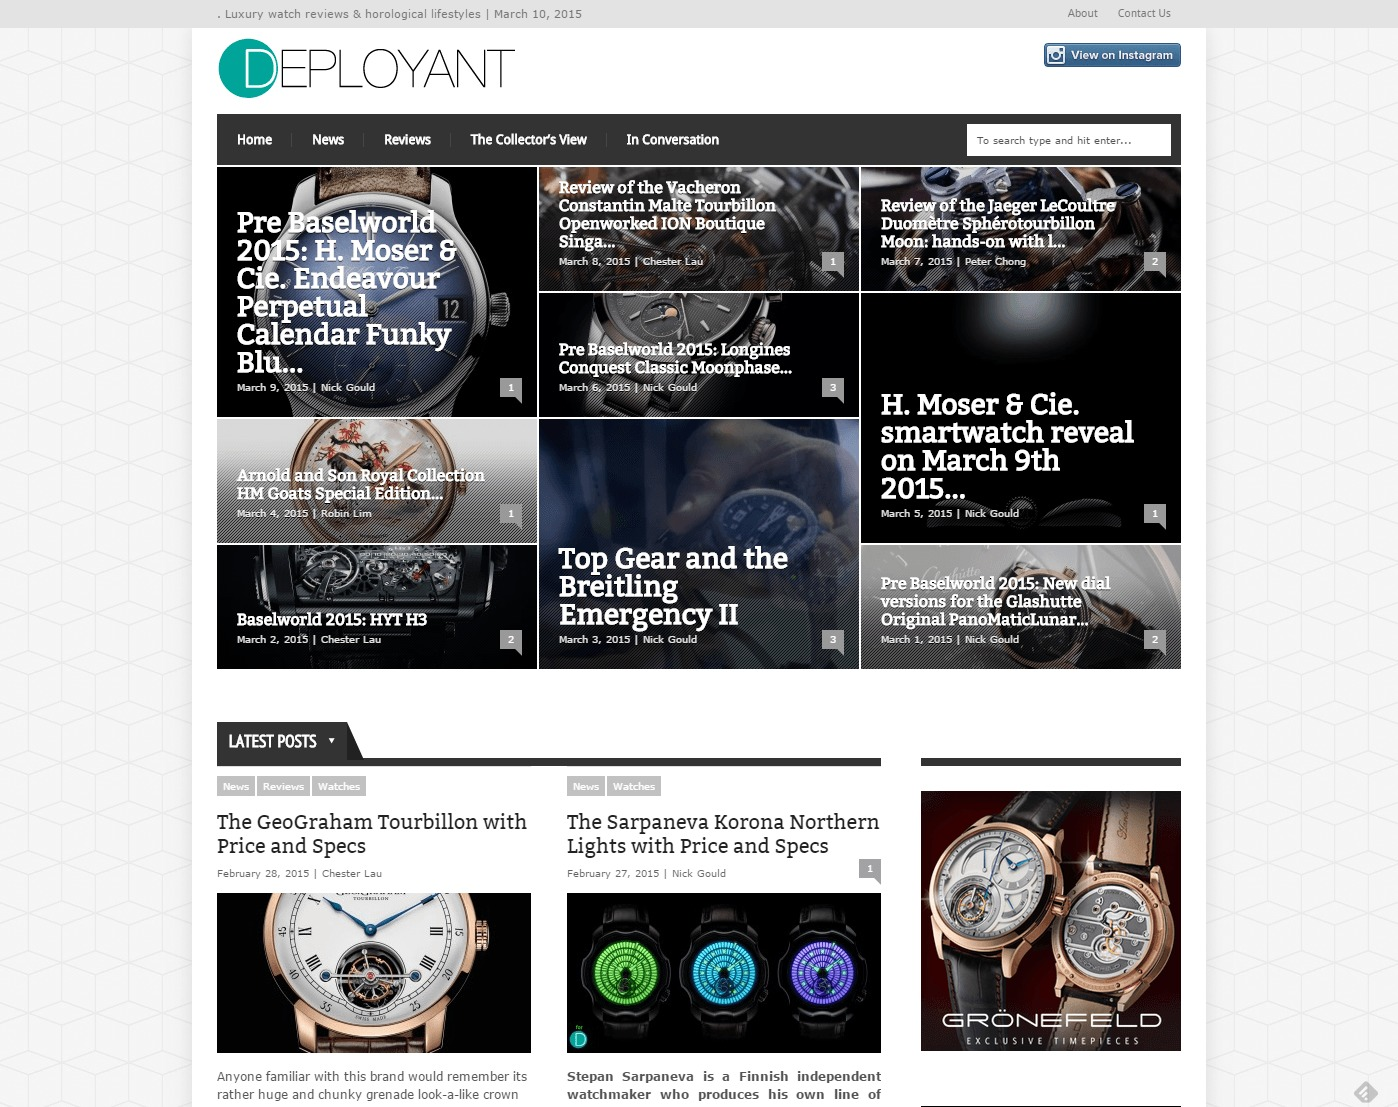 DEPLOYANT. Luxury watch reviews horological lifestyles For the Collector By the Collector